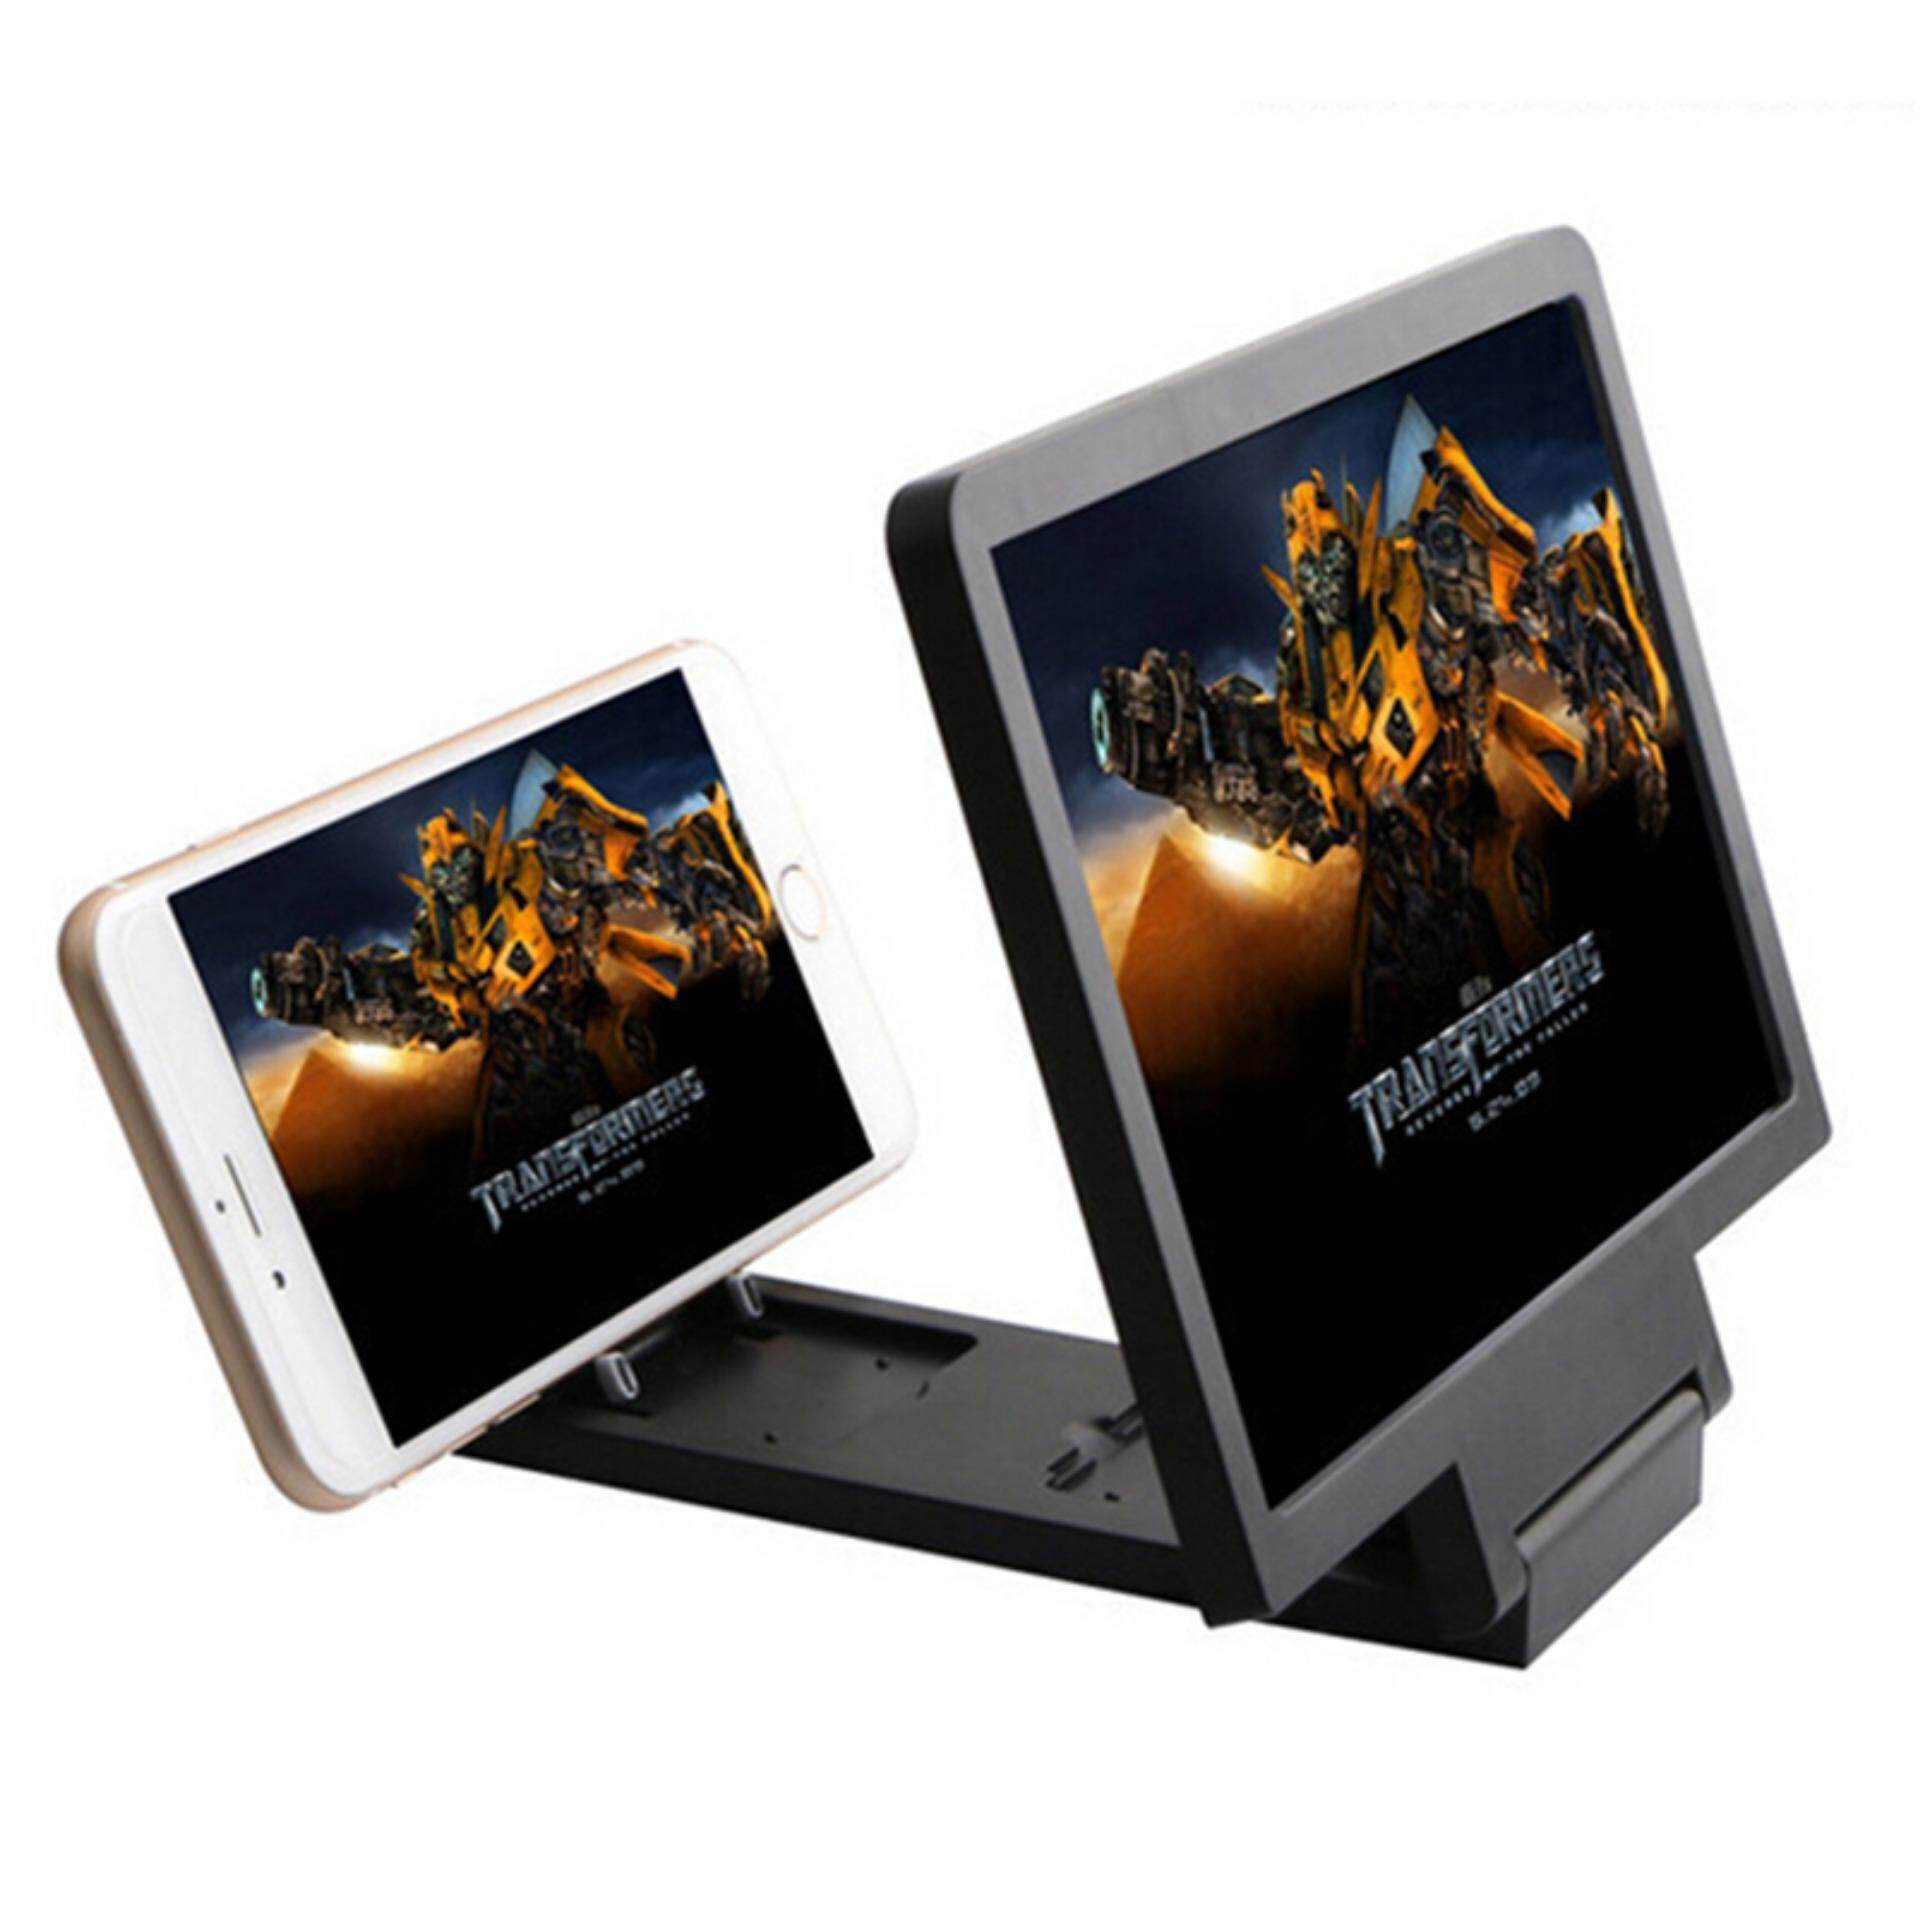 Mobile Phone 3d Screen Hd Video Amplifier Magnifying Glass Stand Popular Black By Buy Tra.